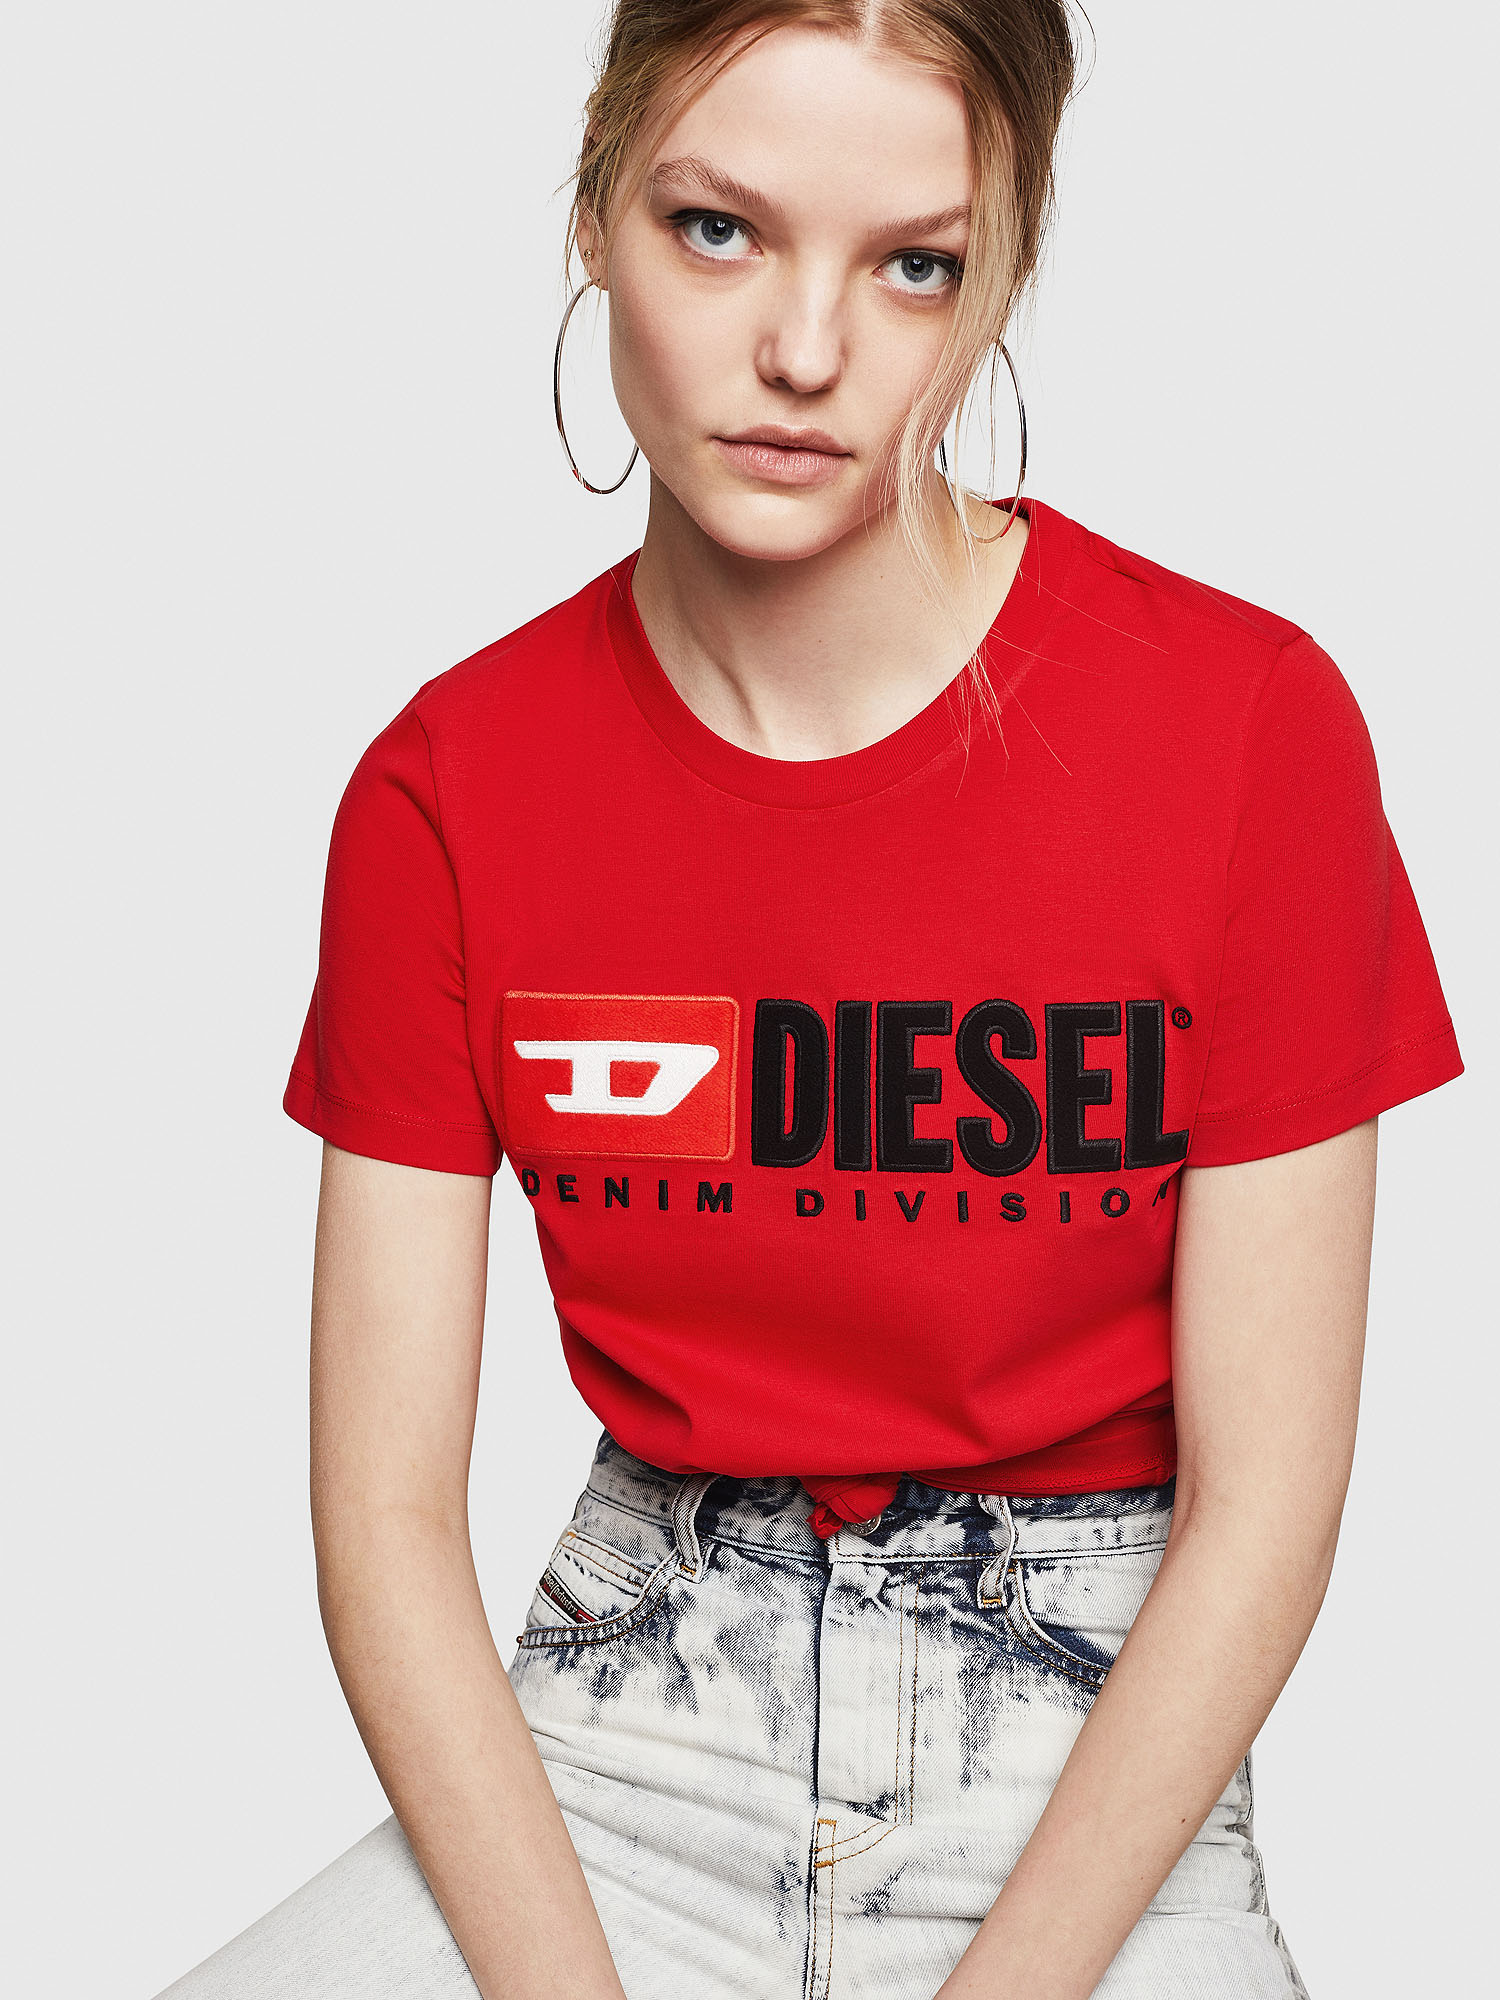 Diesel - T-SILY-DIVISION,  - T-Shirts - Image 4